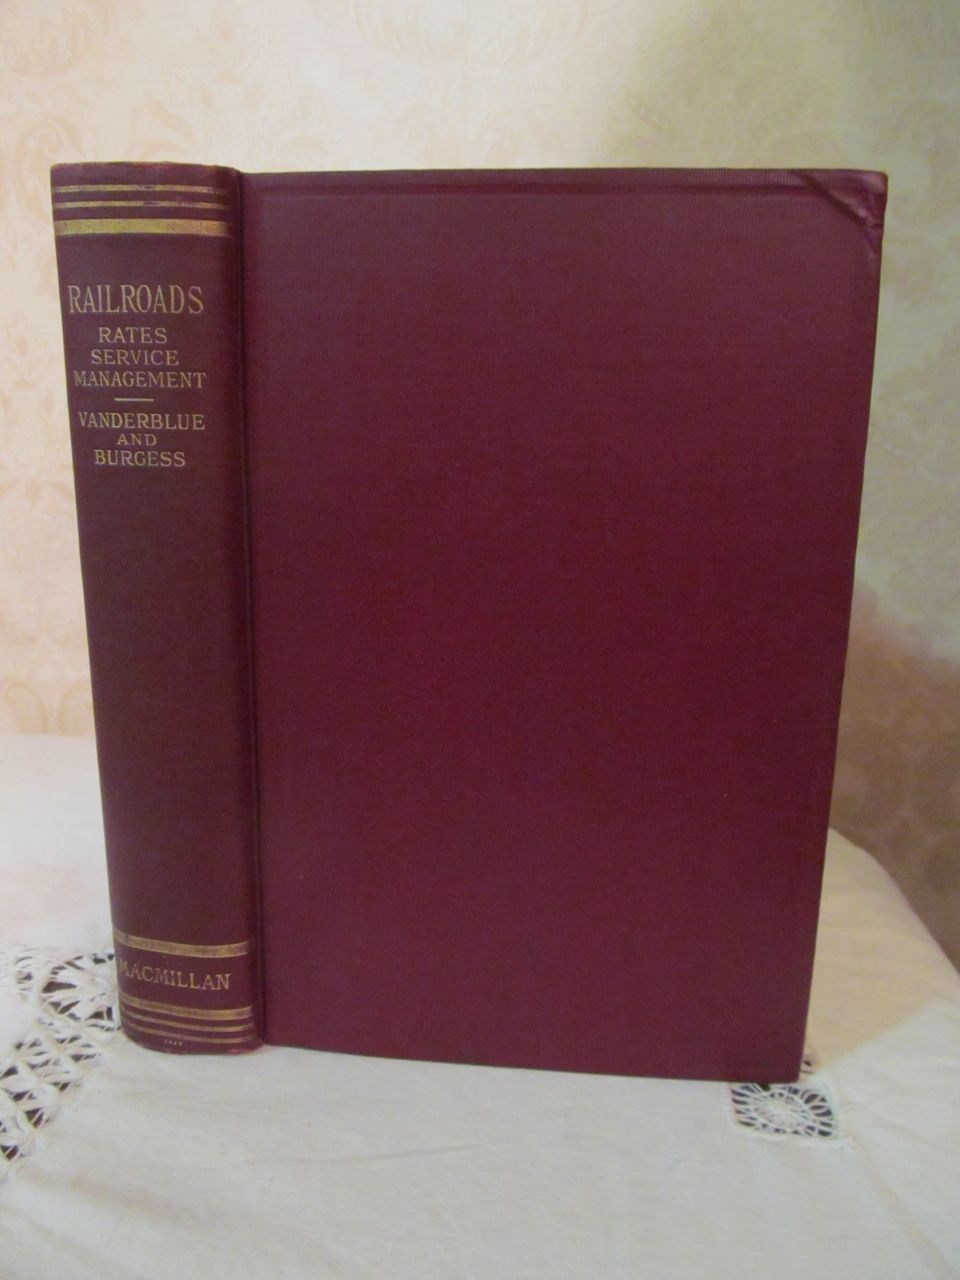 1924 Railroads, Rates, Service, Management by Homer Bews Vanderblue & Kenneth Farwell Burgess, Publ The MacMillian Company